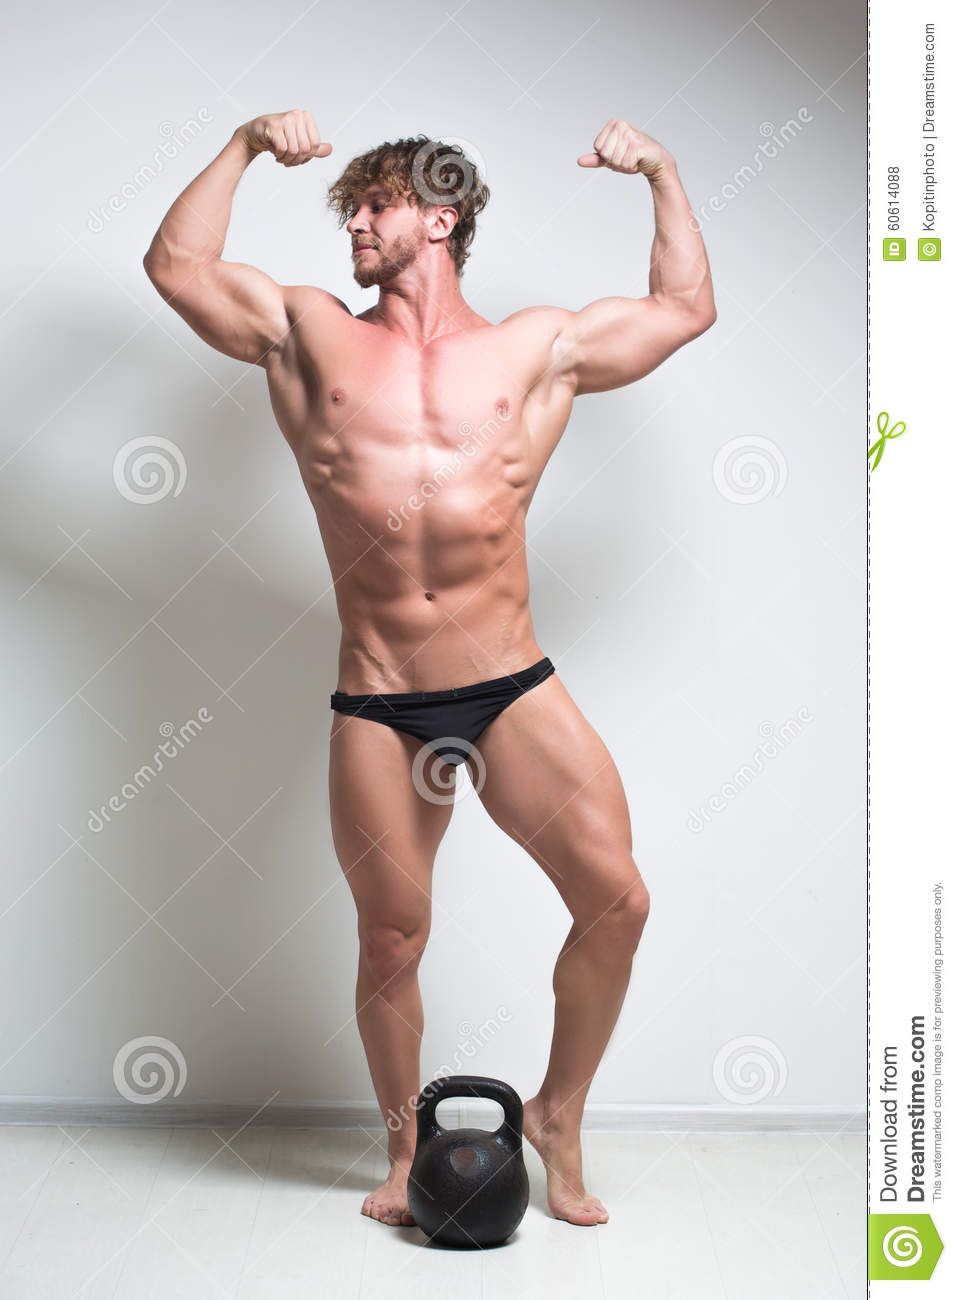 Kettlebell Bodybuilding Bodybuilder Against A White Wall Kettlebell Stock Photo Image